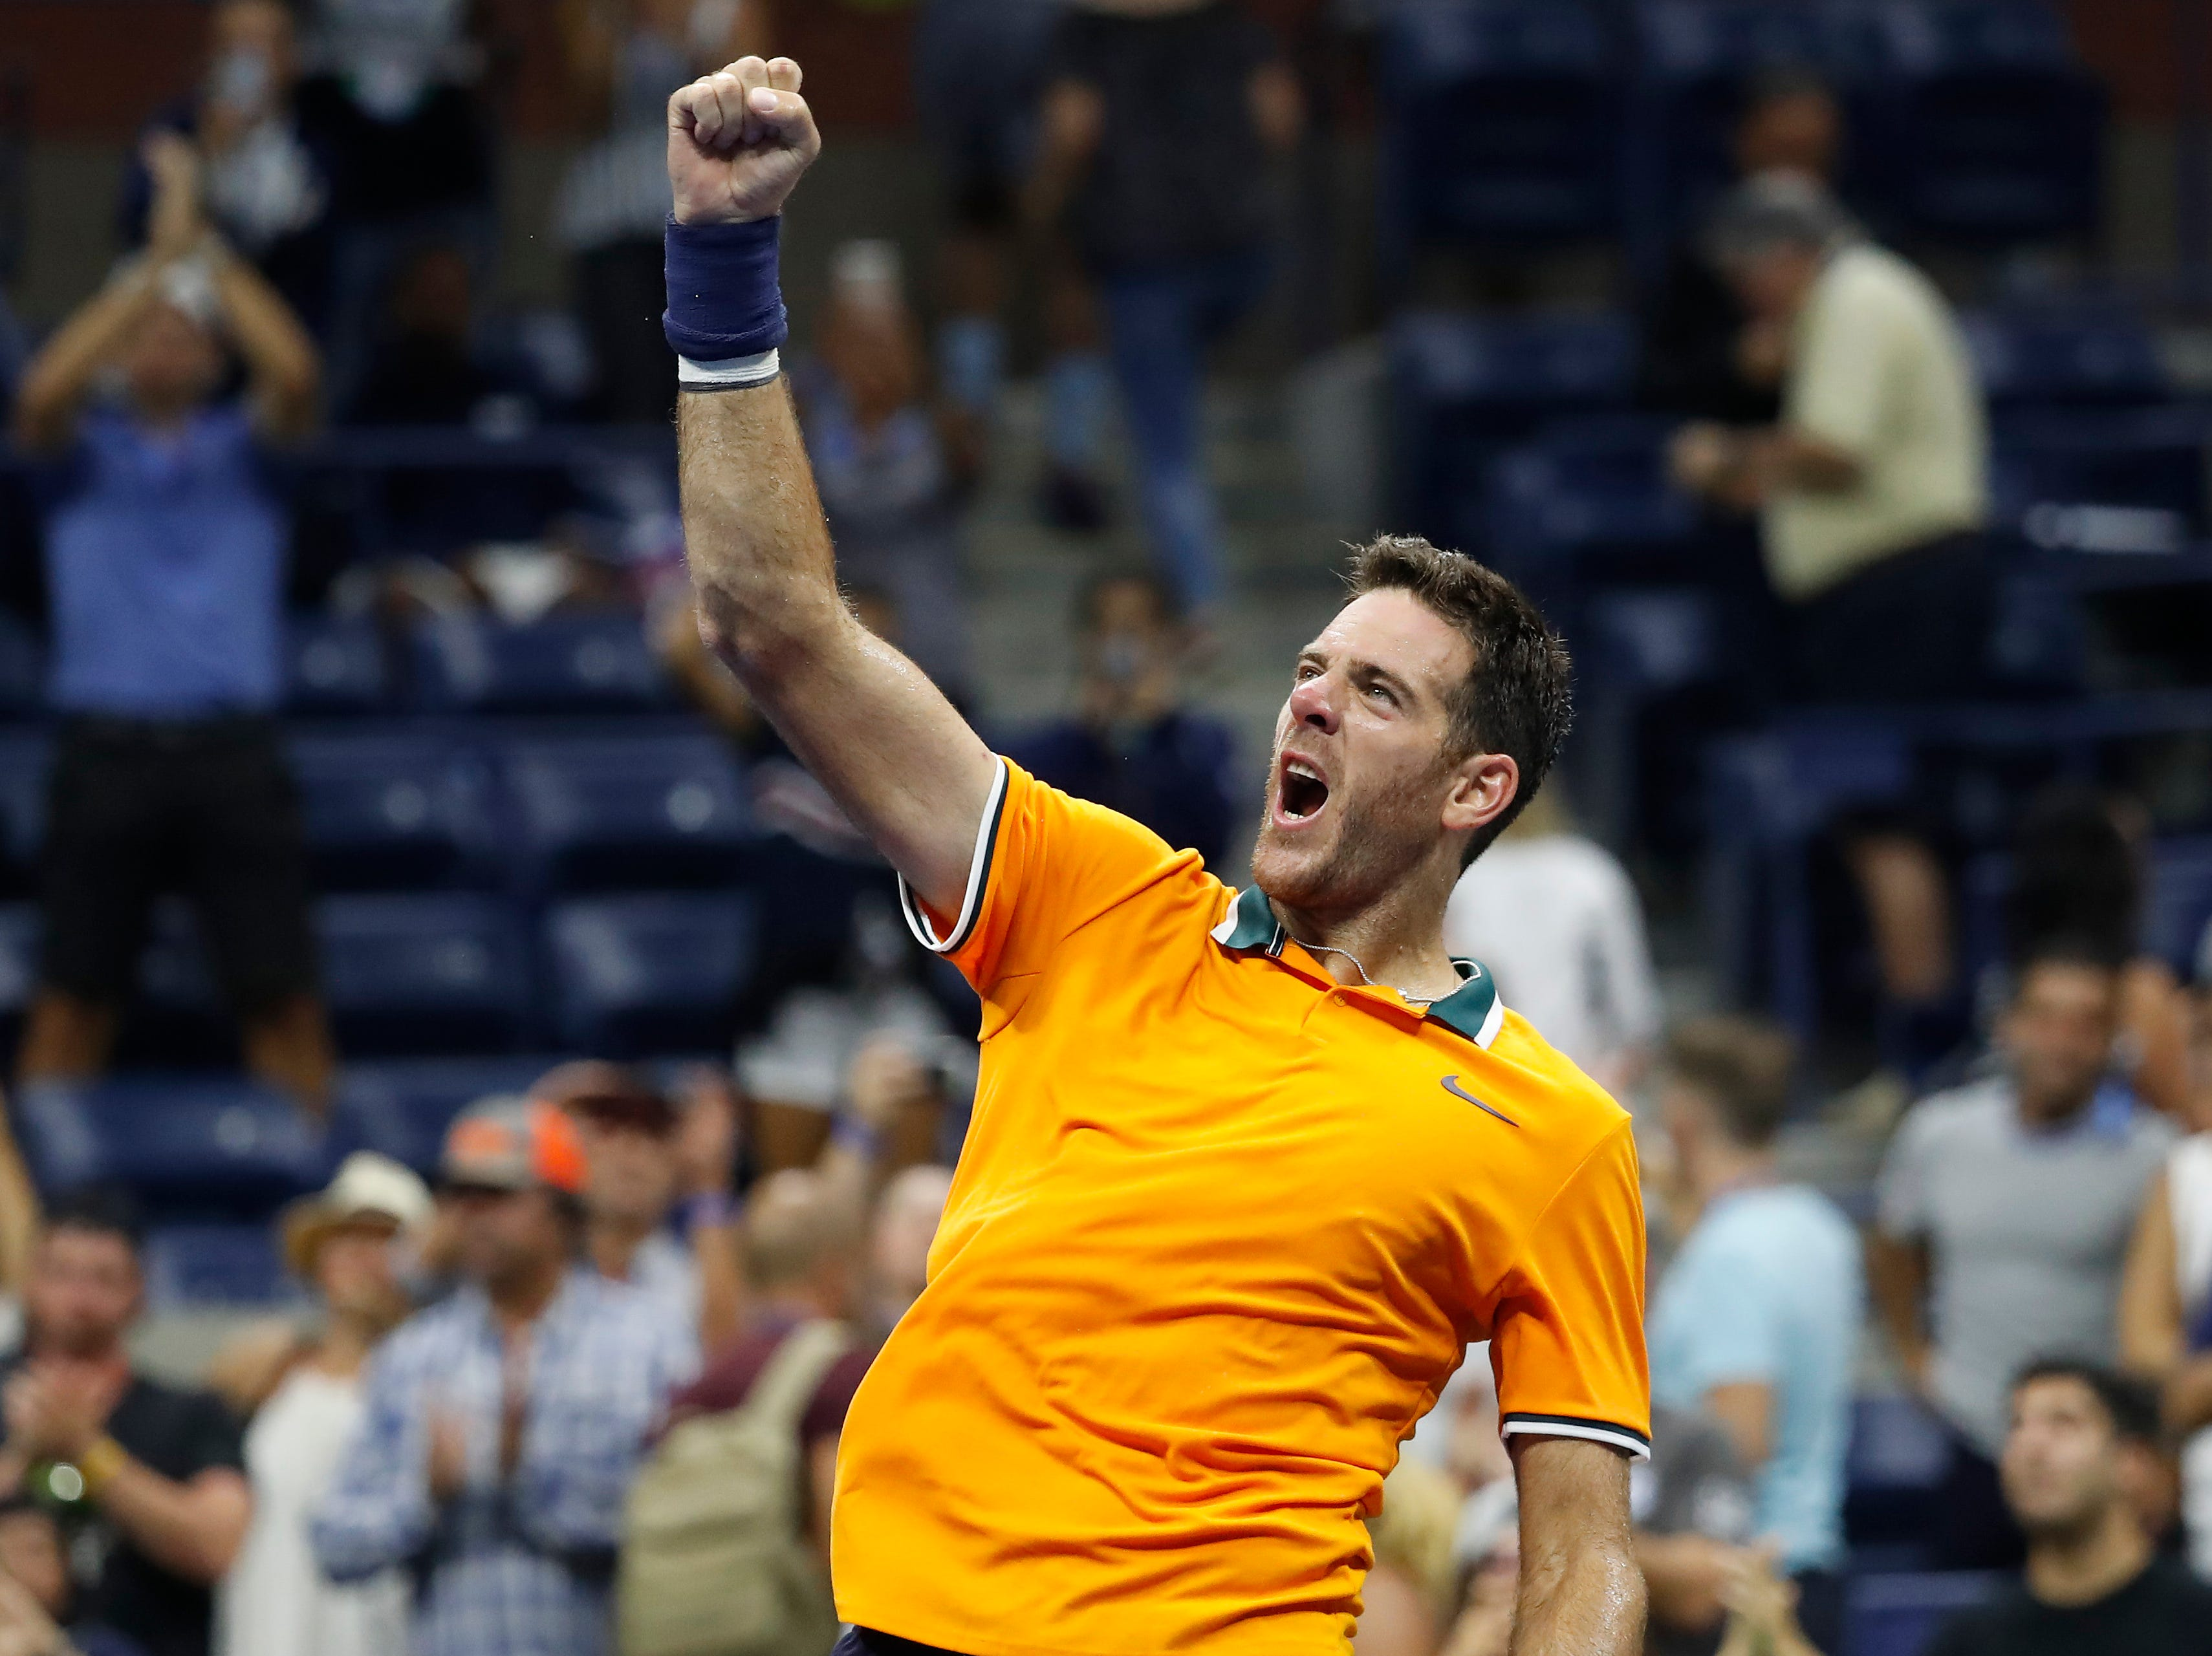 Juan Martin del Potro salutes the crowd after his fourth-round win against Borna Coric.